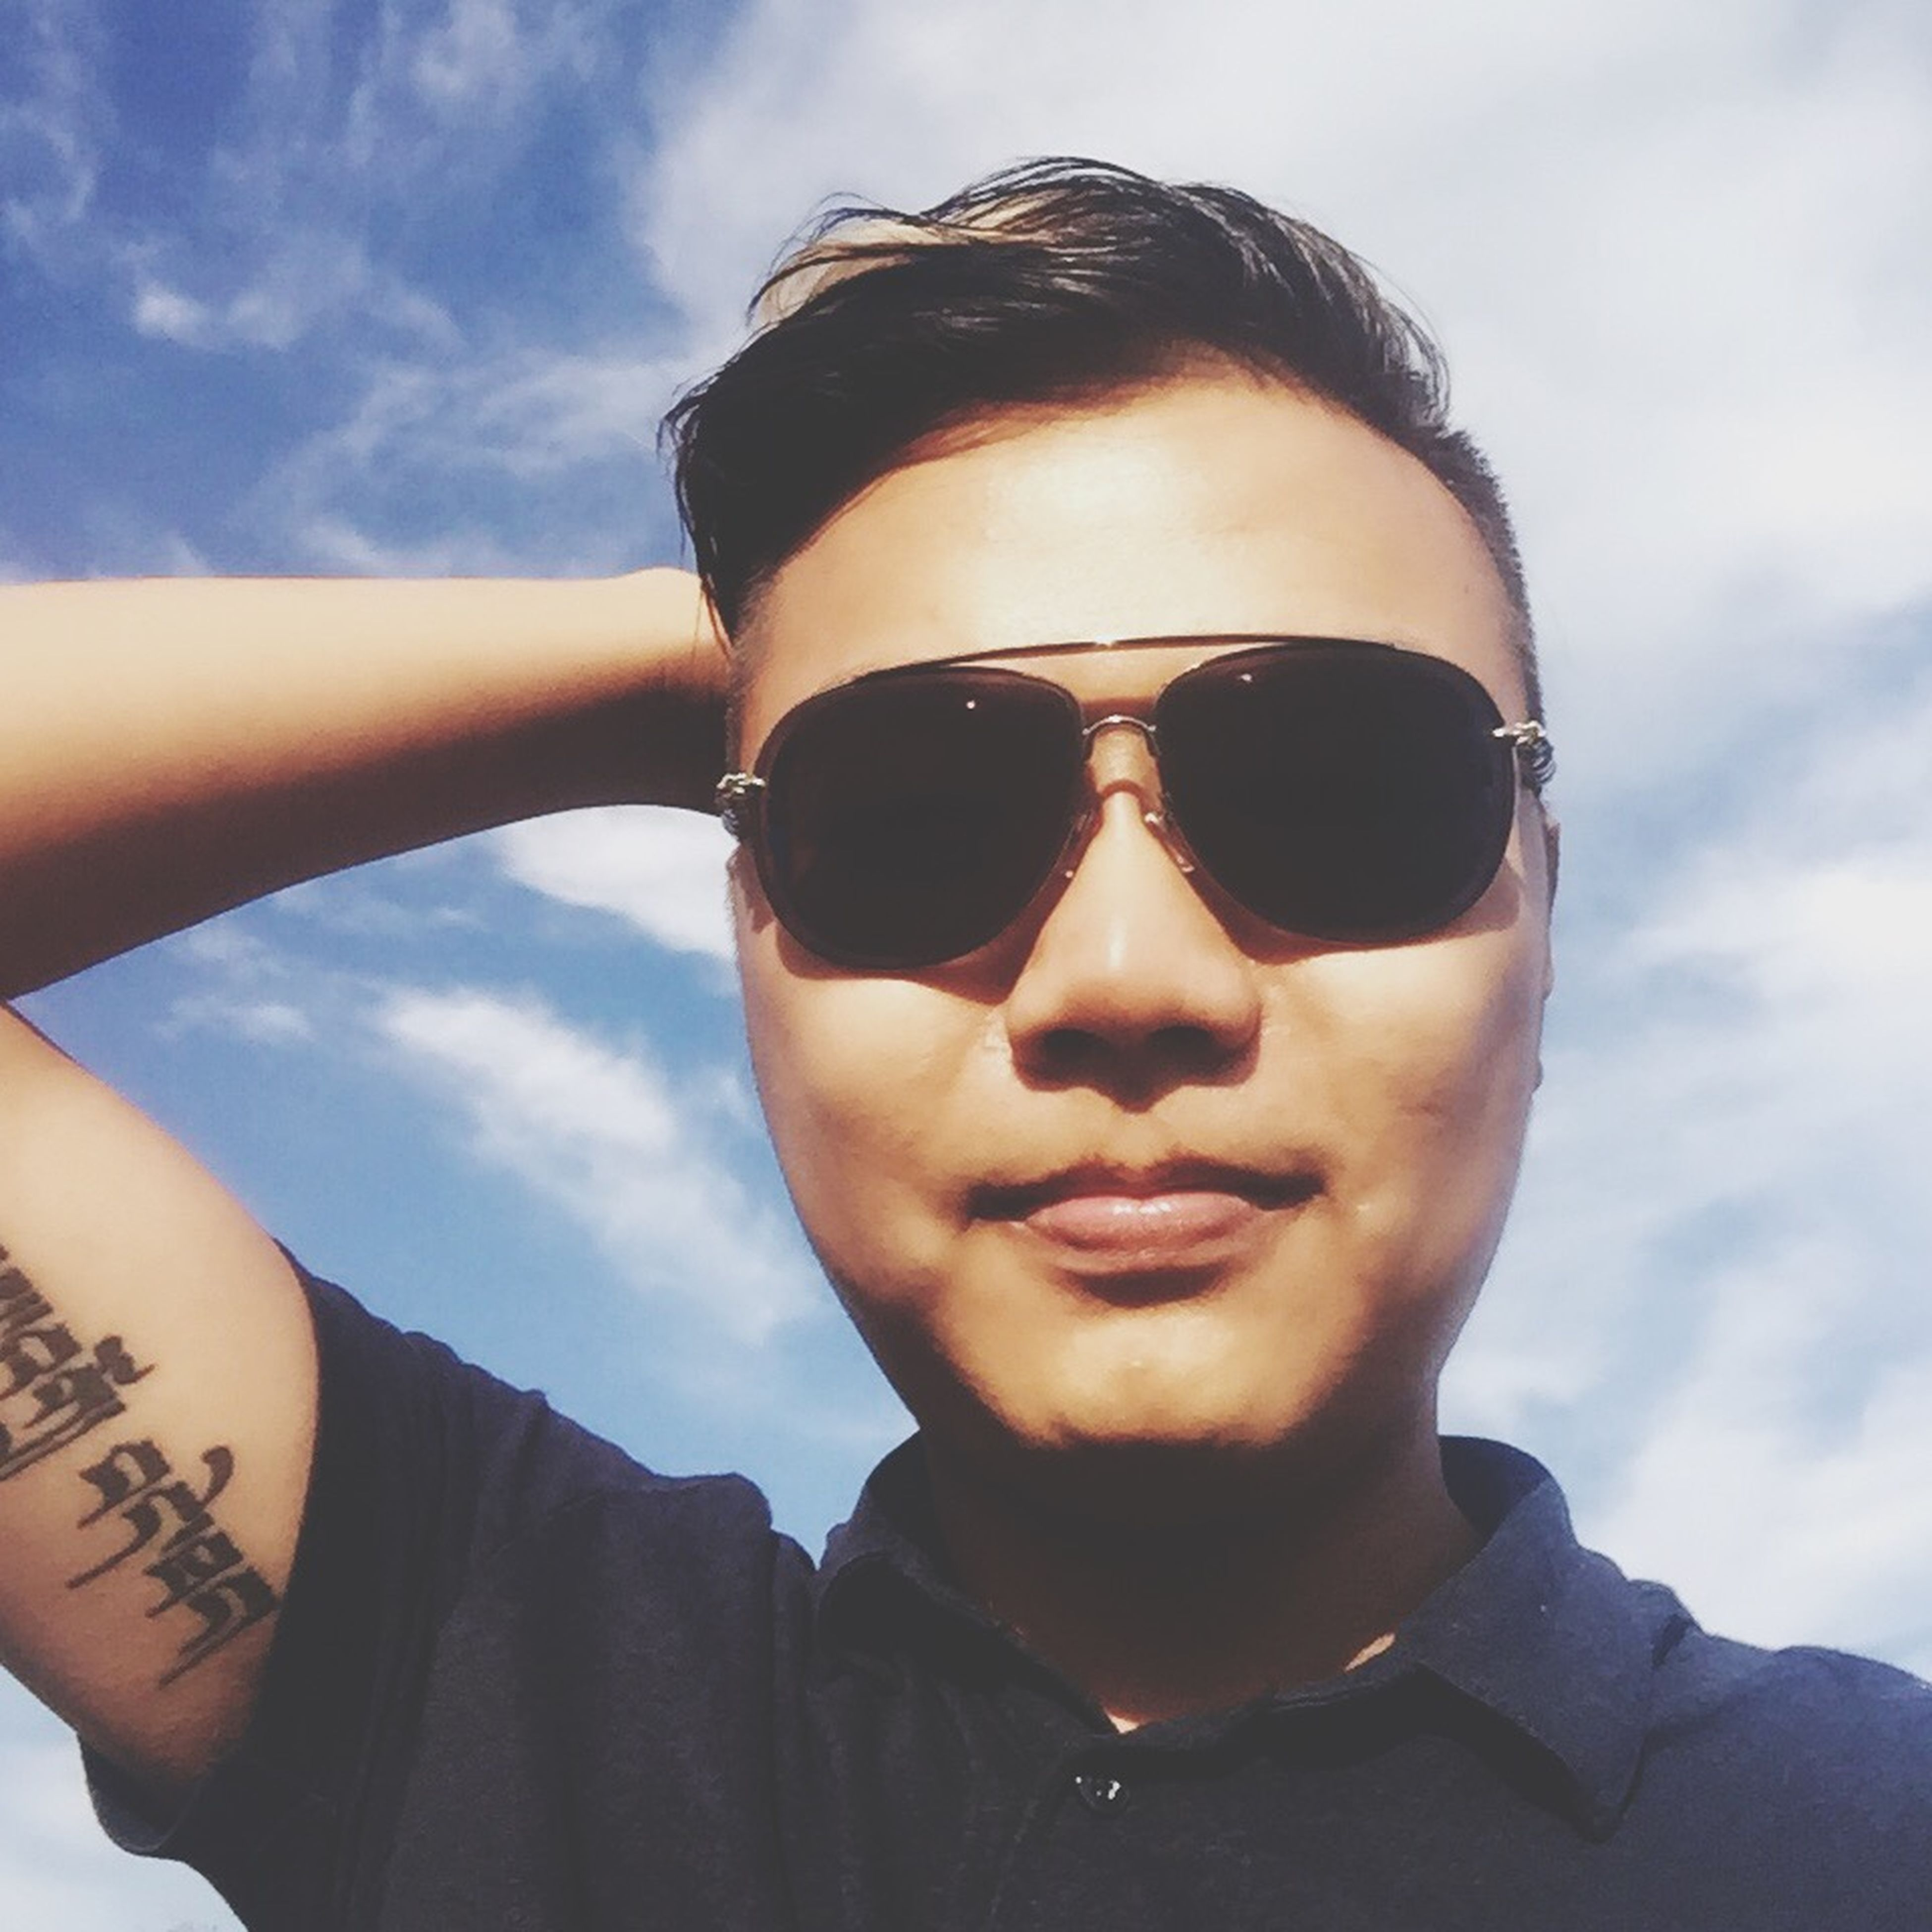 looking at camera, portrait, sky, lifestyles, person, headshot, sunglasses, leisure activity, young adult, front view, cloud - sky, young men, smiling, cloud, head and shoulders, close-up, day, mid adult